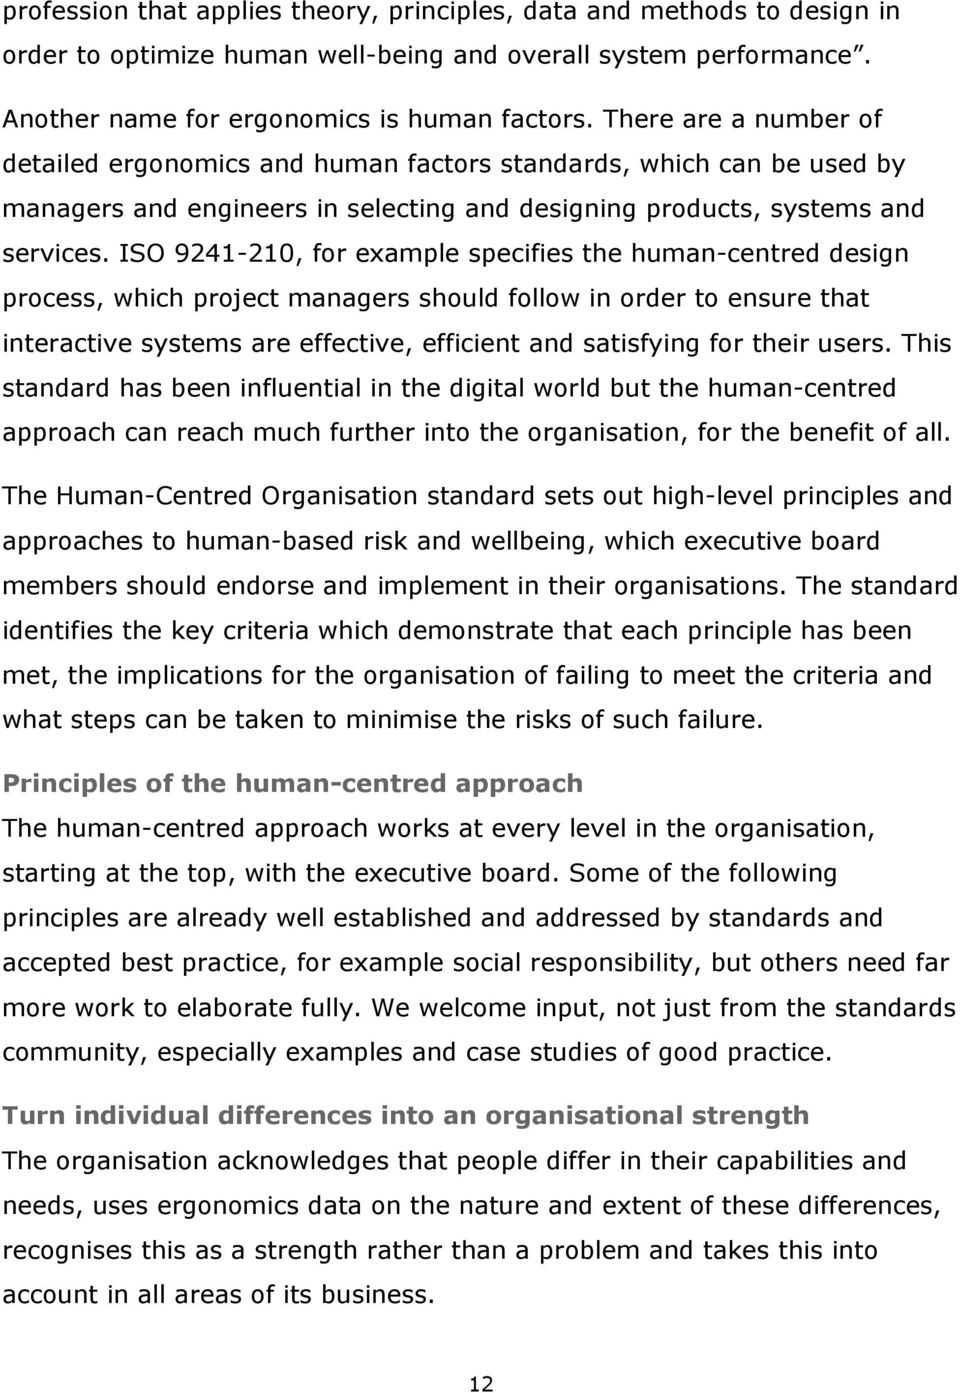 ISO 9241-210, for example specifies the human-centred design process, which project managers should follow in order to ensure that interactive systems are effective, efficient and satisfying for